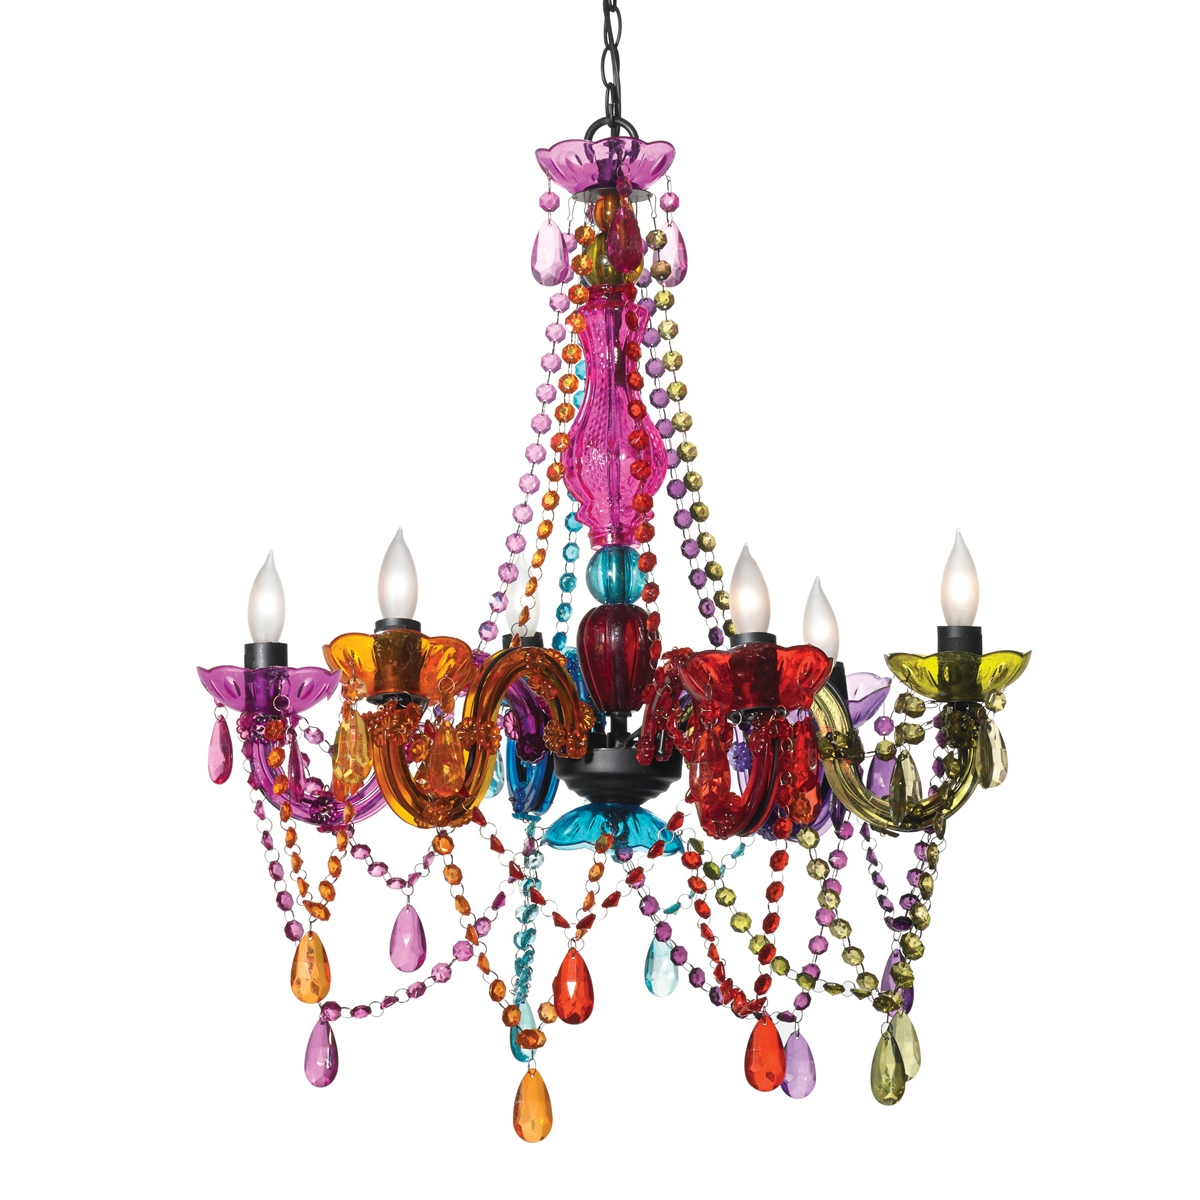 Chandelier Interesting Colorful Chandelier Fascinating Colorful With Regard To Gypsy Chandeliers (Image 10 of 25)